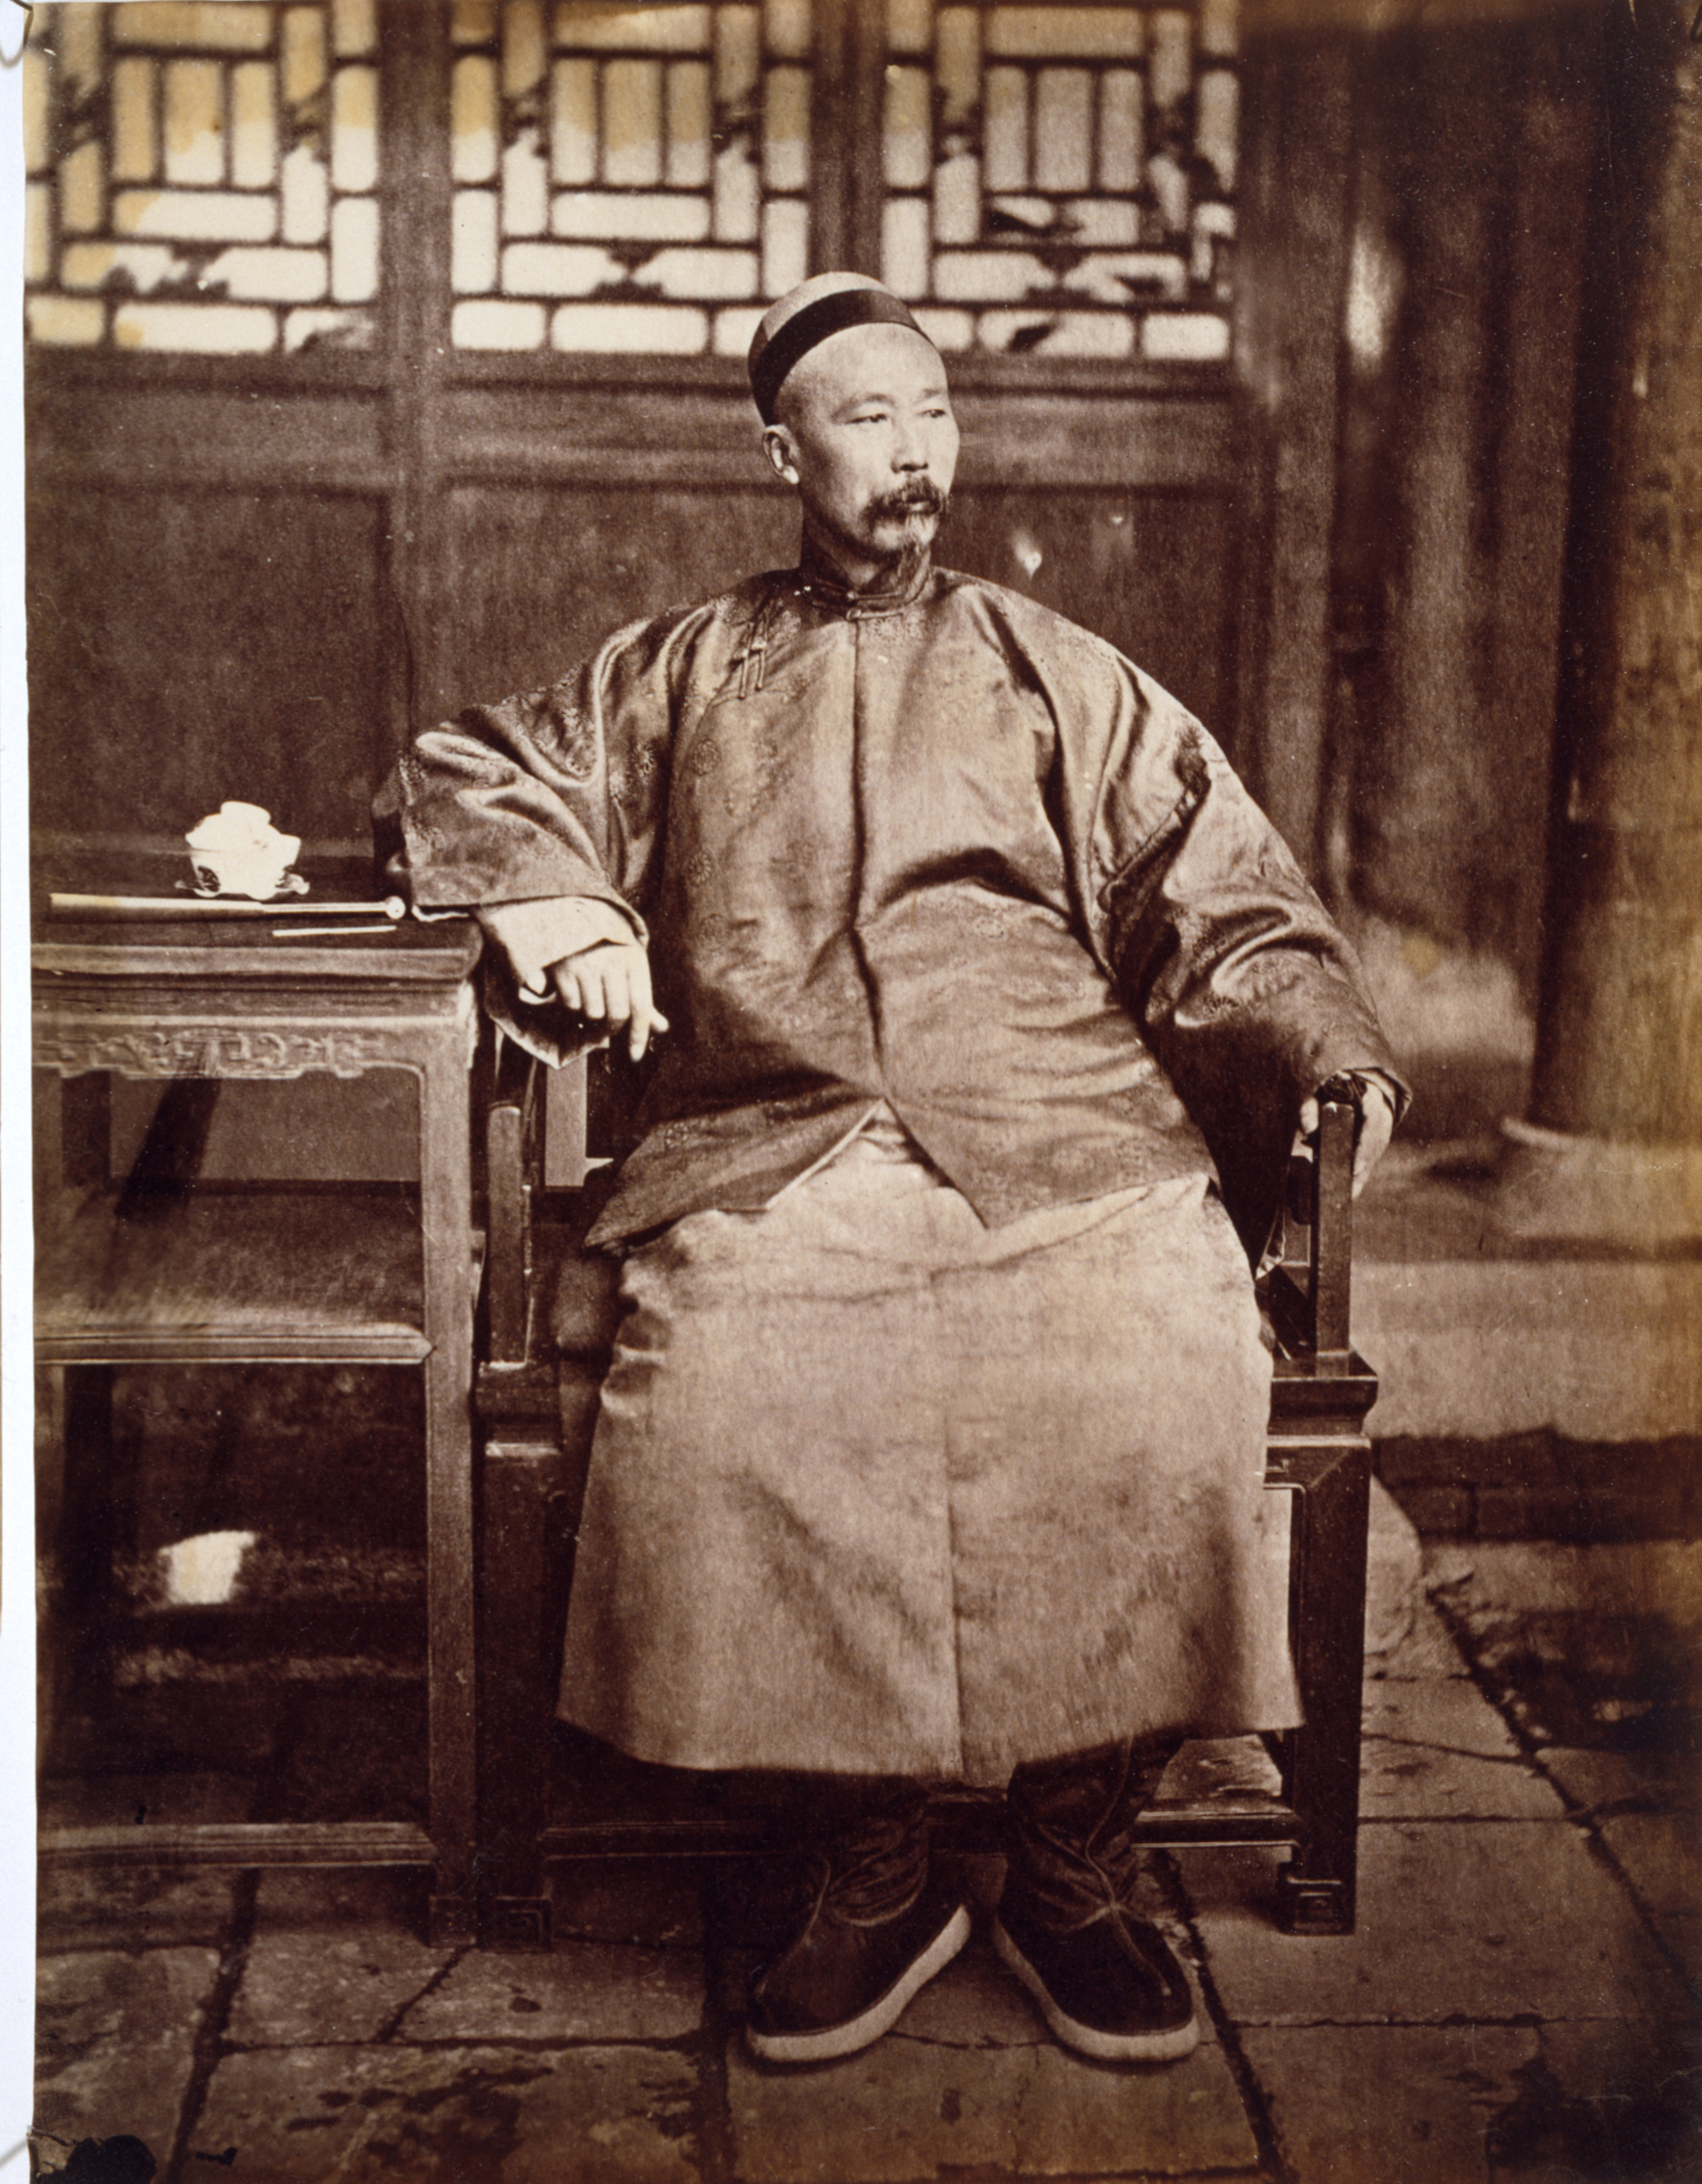 the boxer rebellion assessment Boxer rebellion students might also be asked to answer the following in a 3-5 paragraph essay: describe the reasons why the united states adopted the open door policy towards china and discuss possible problems with that approach.